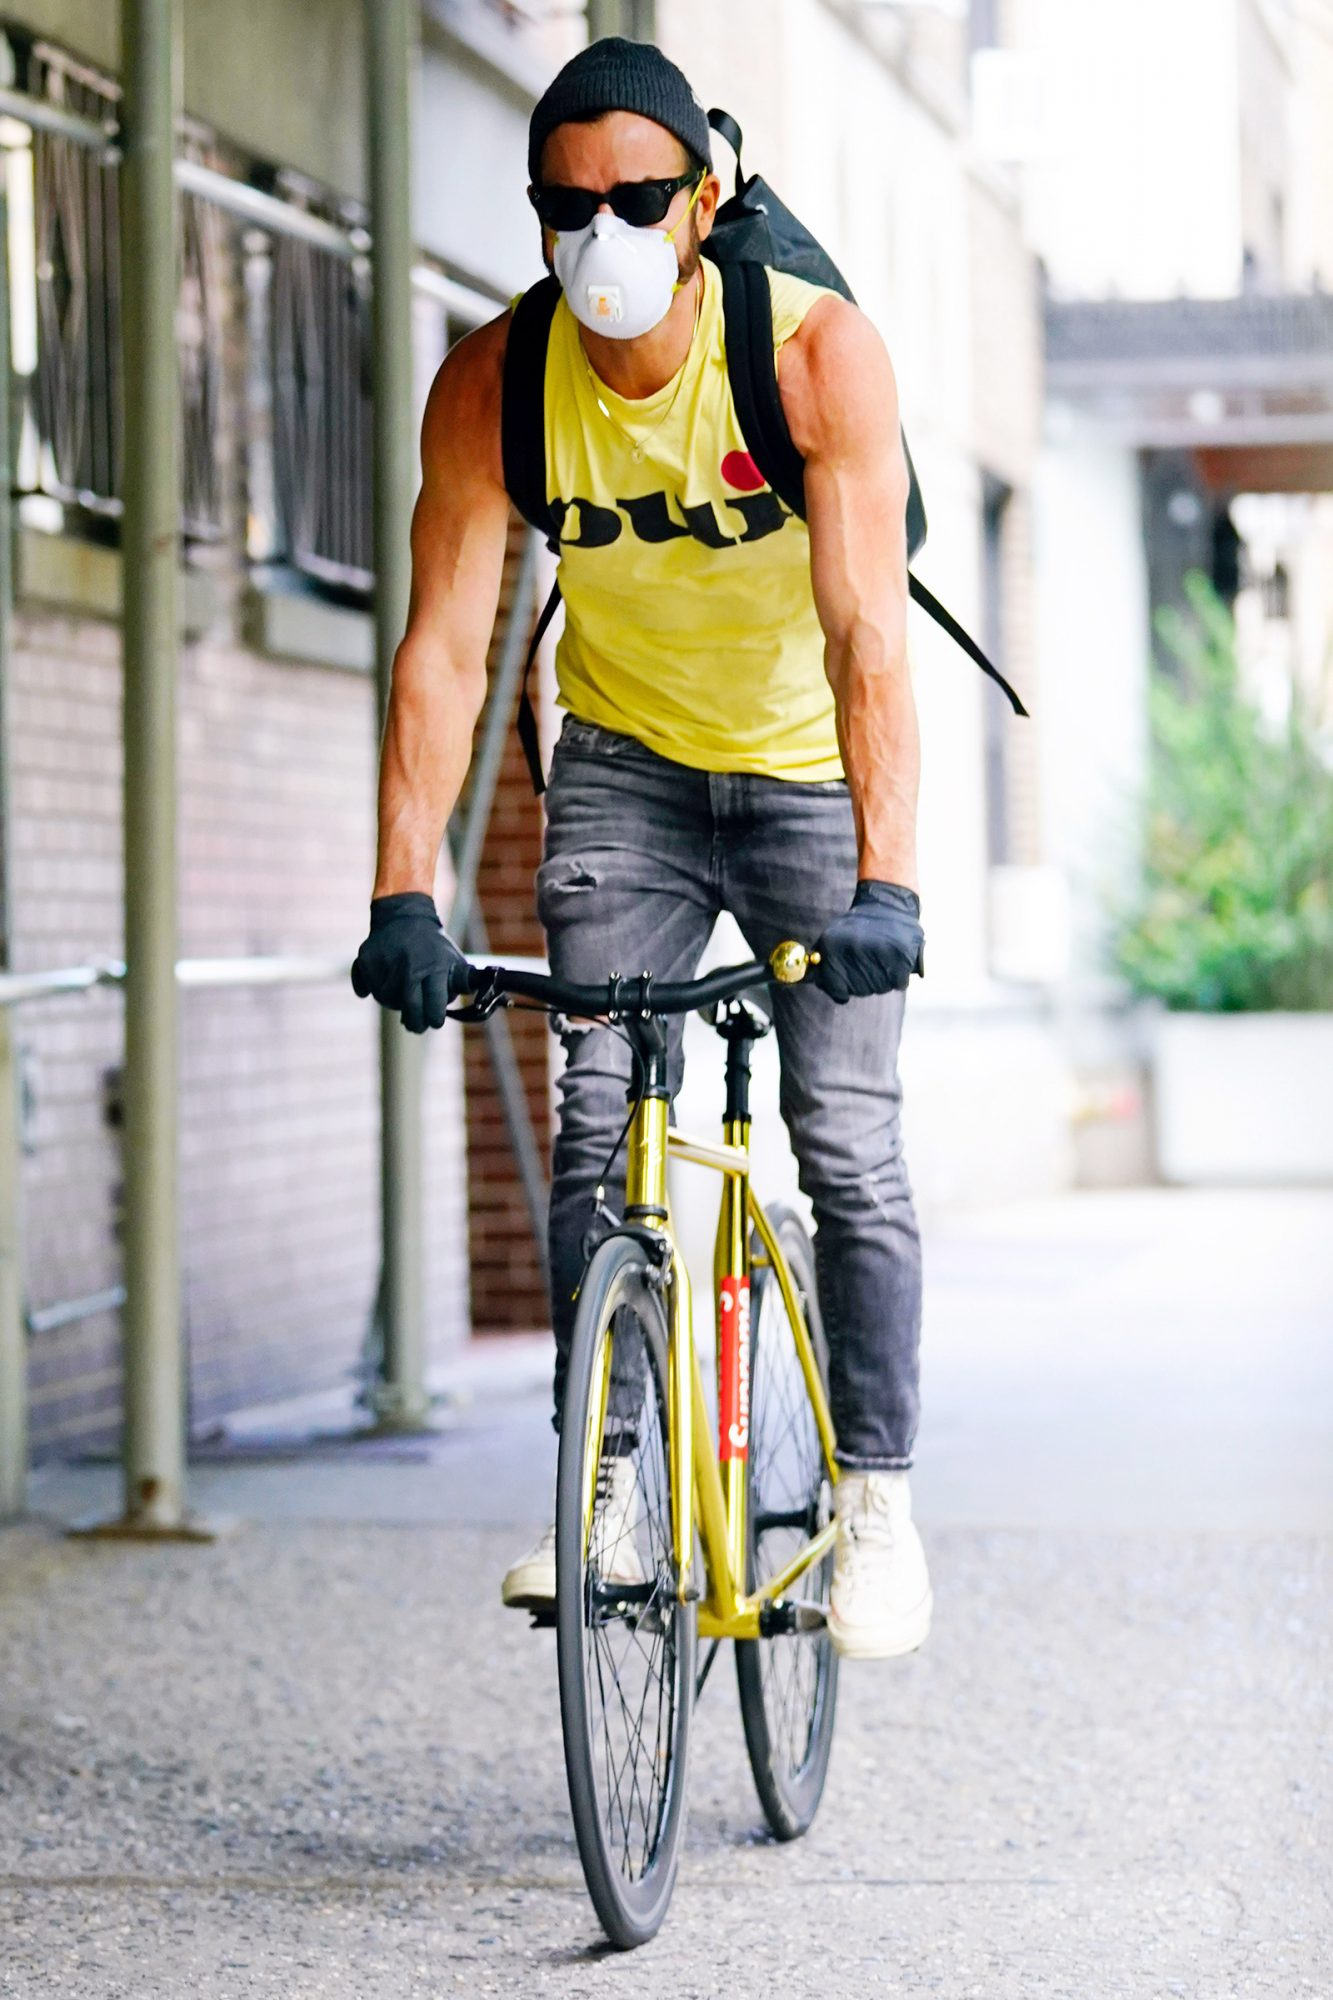 Justin Theroux Shows Off His Bulging Biceps While on a Bike Ride in New York City.